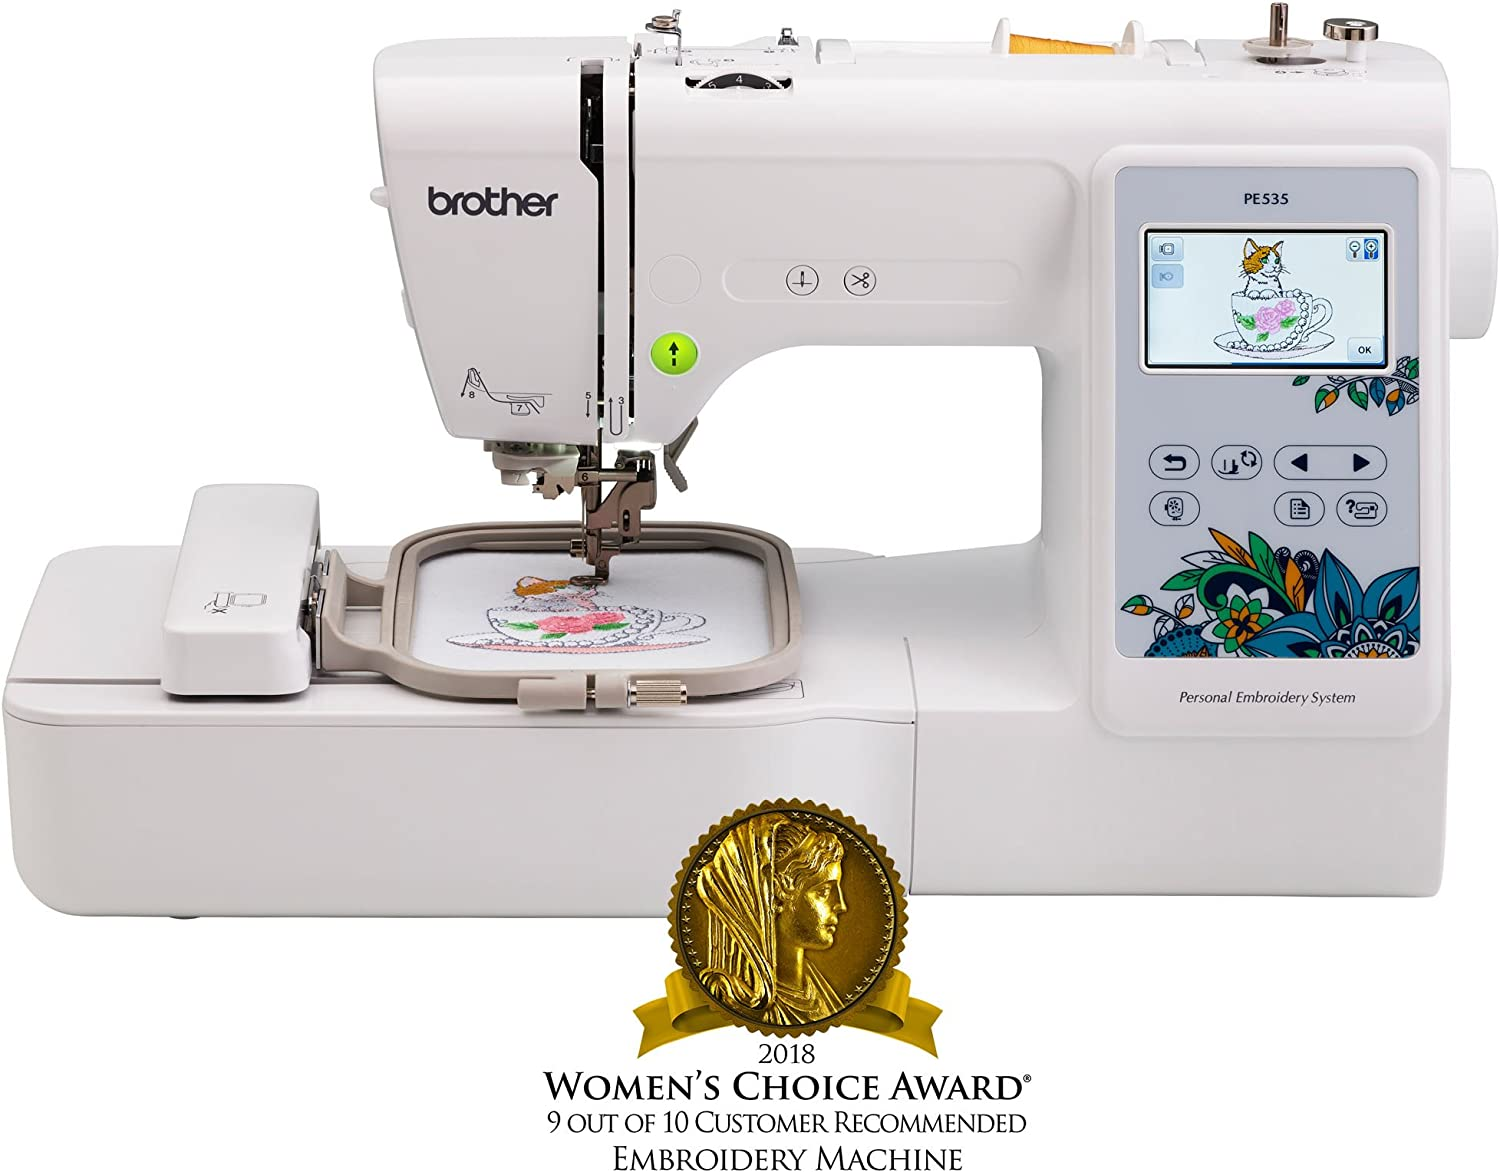 Brother Embroidery Machine, PE535, 80 Built-In Designs, Large LCD Color Touchscreen Display, 25-Year Limited Warranty, white